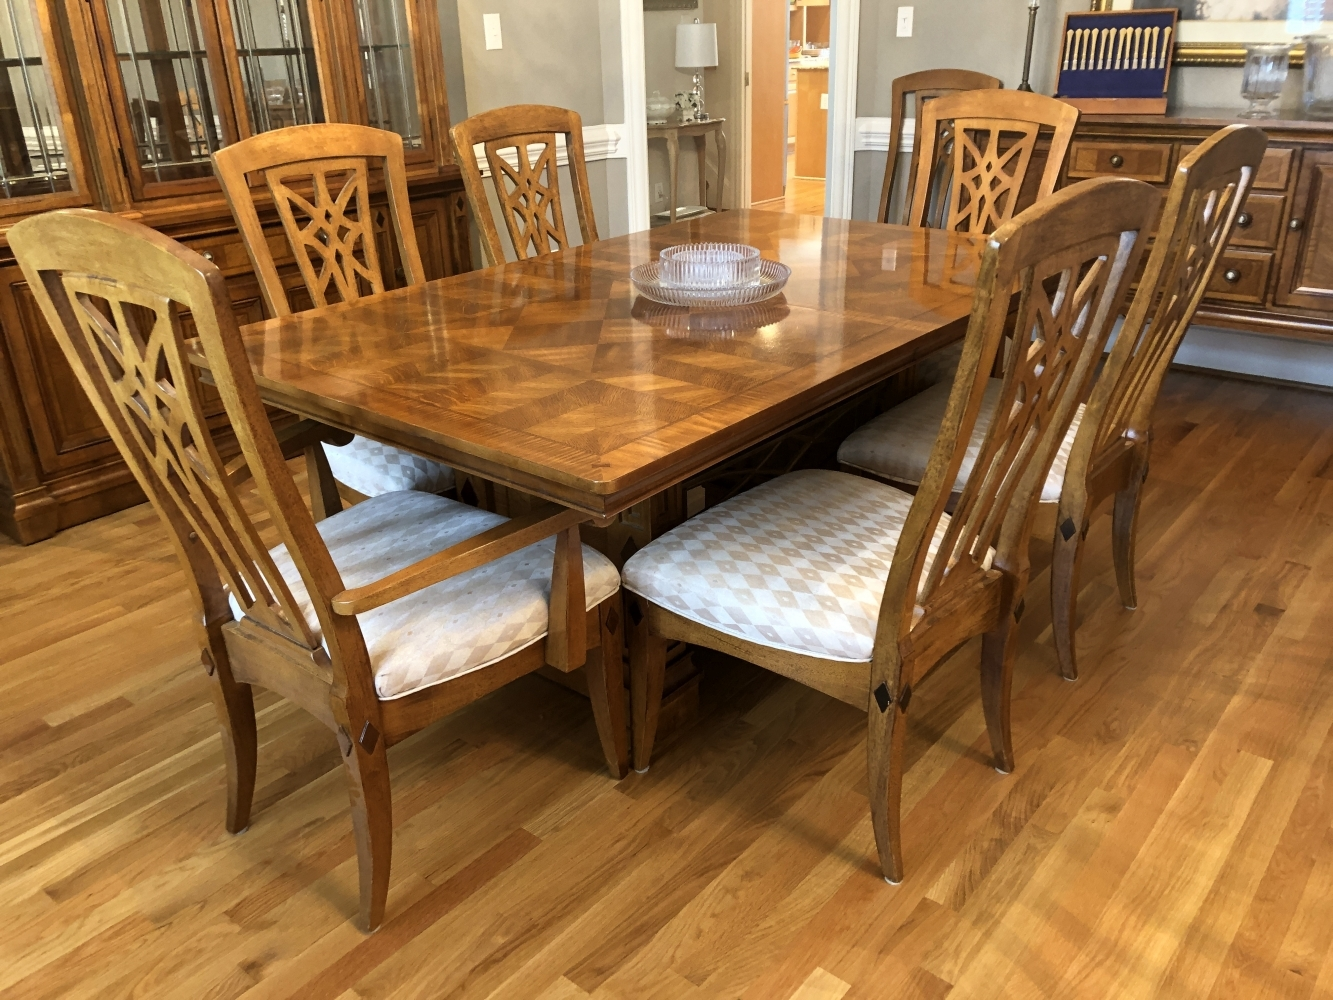 Great Blue Moon Estate Sale In Cary With Ethan Allen Furniture Artwork And More Blue Moon Estate Sales Raleigh Nc